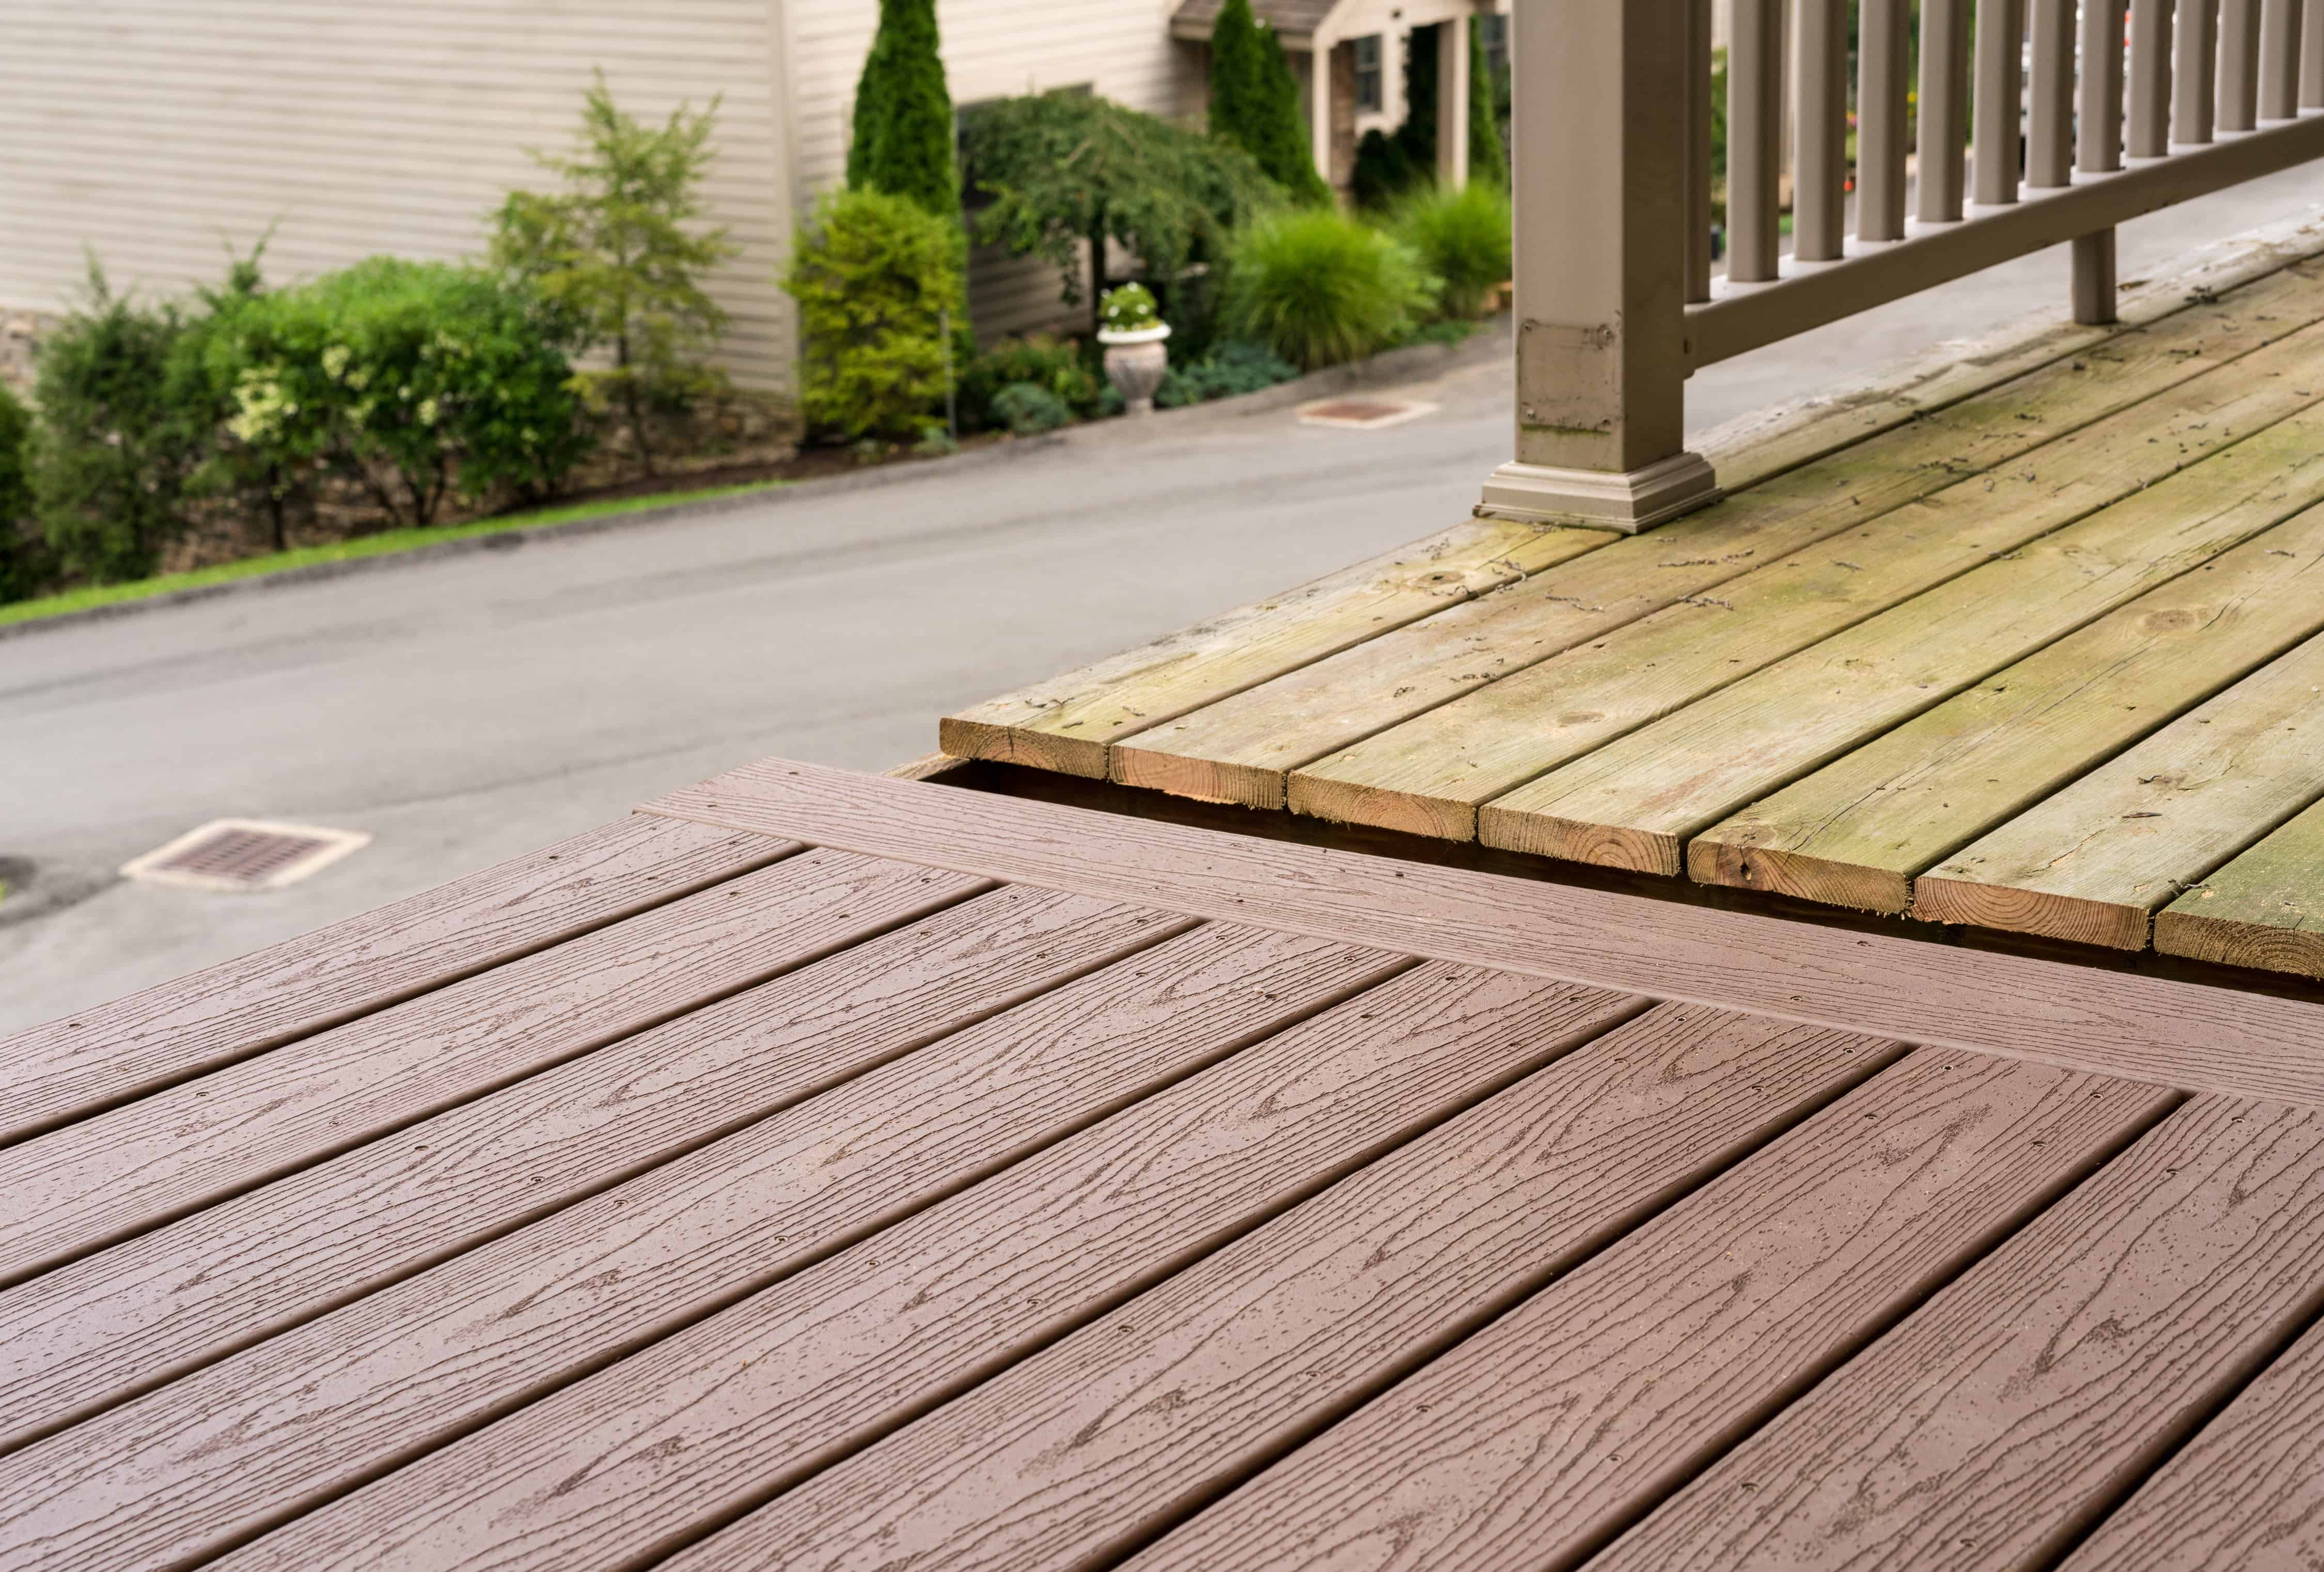 Synthetic Deck Boards 10 Tips For Choosing The Best Composite Decking Decks Docks